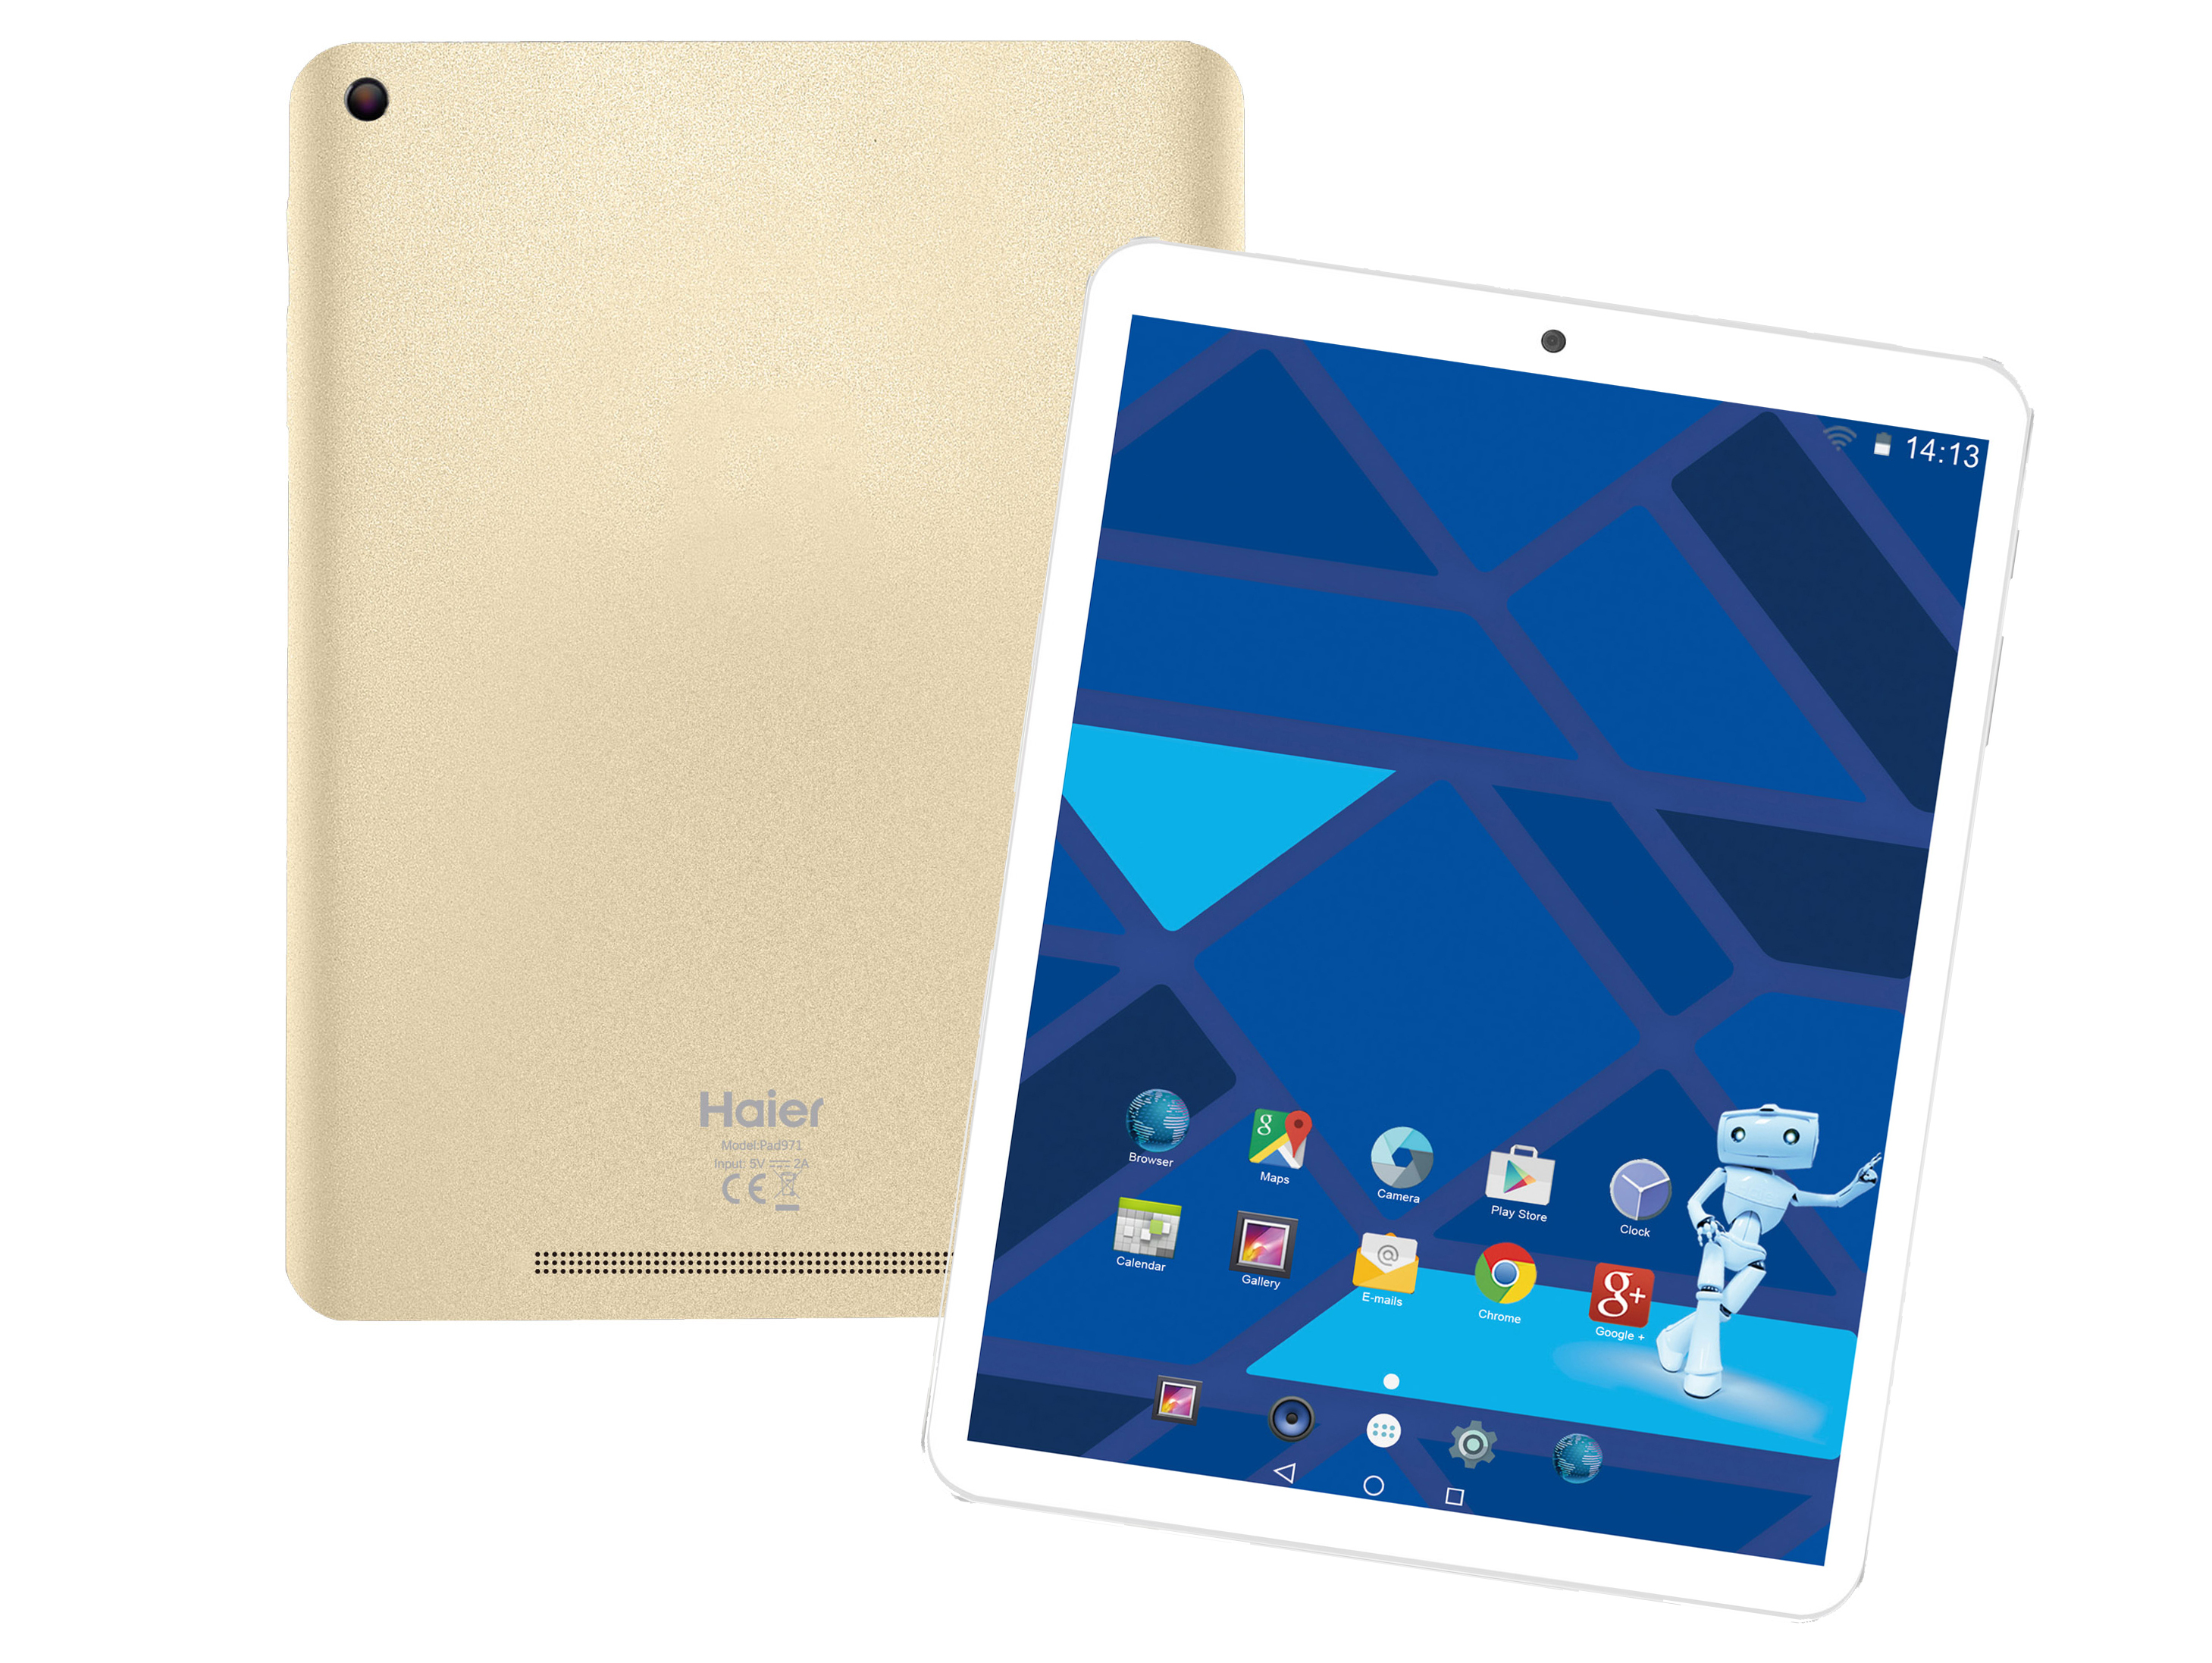 Haier Pad 971 Tablet Review - NotebookCheck.net Reviews